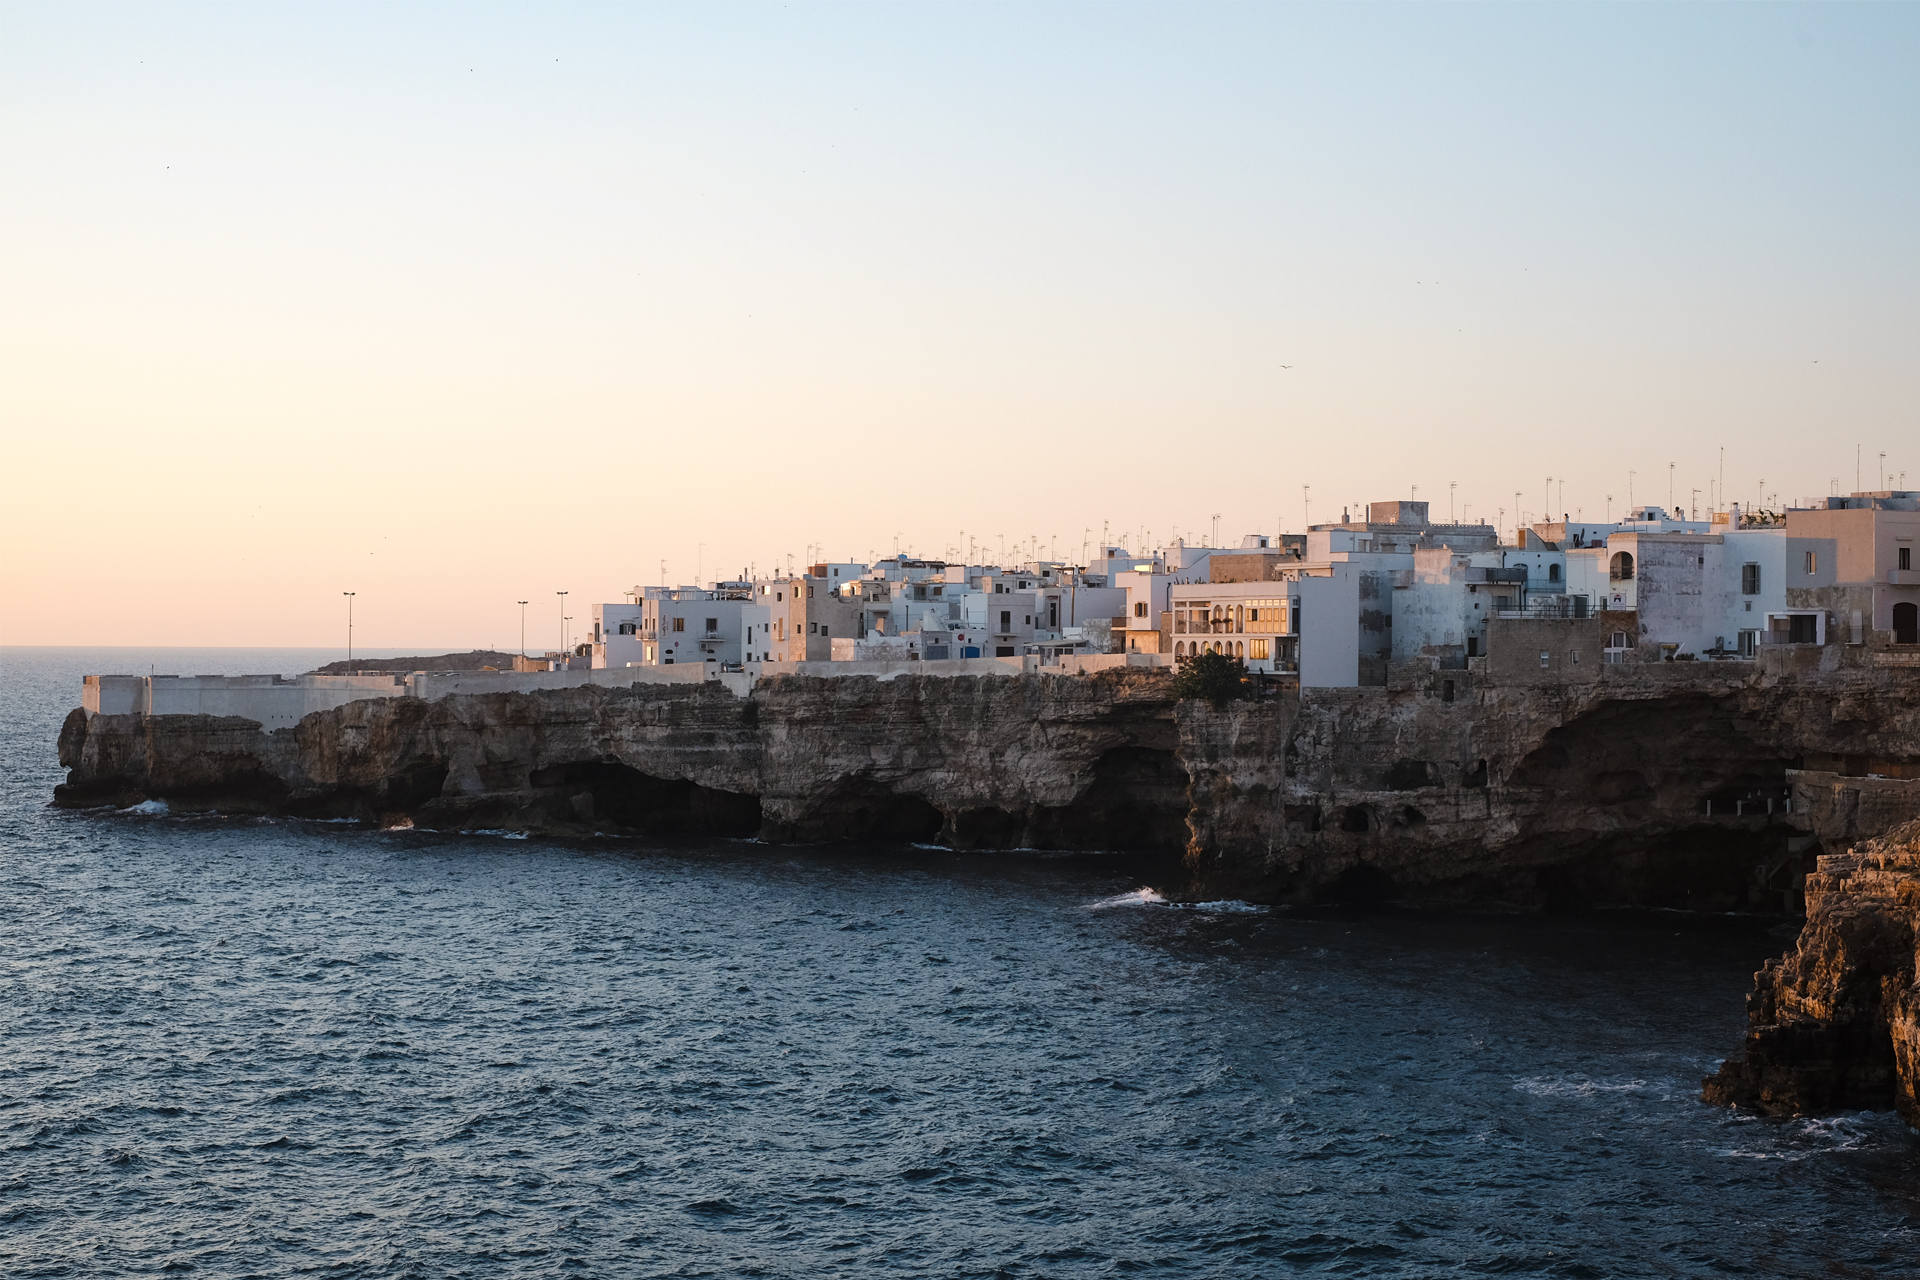 glimpse of the Cliffs and town of Polignano a Mare in the light of the sunrise